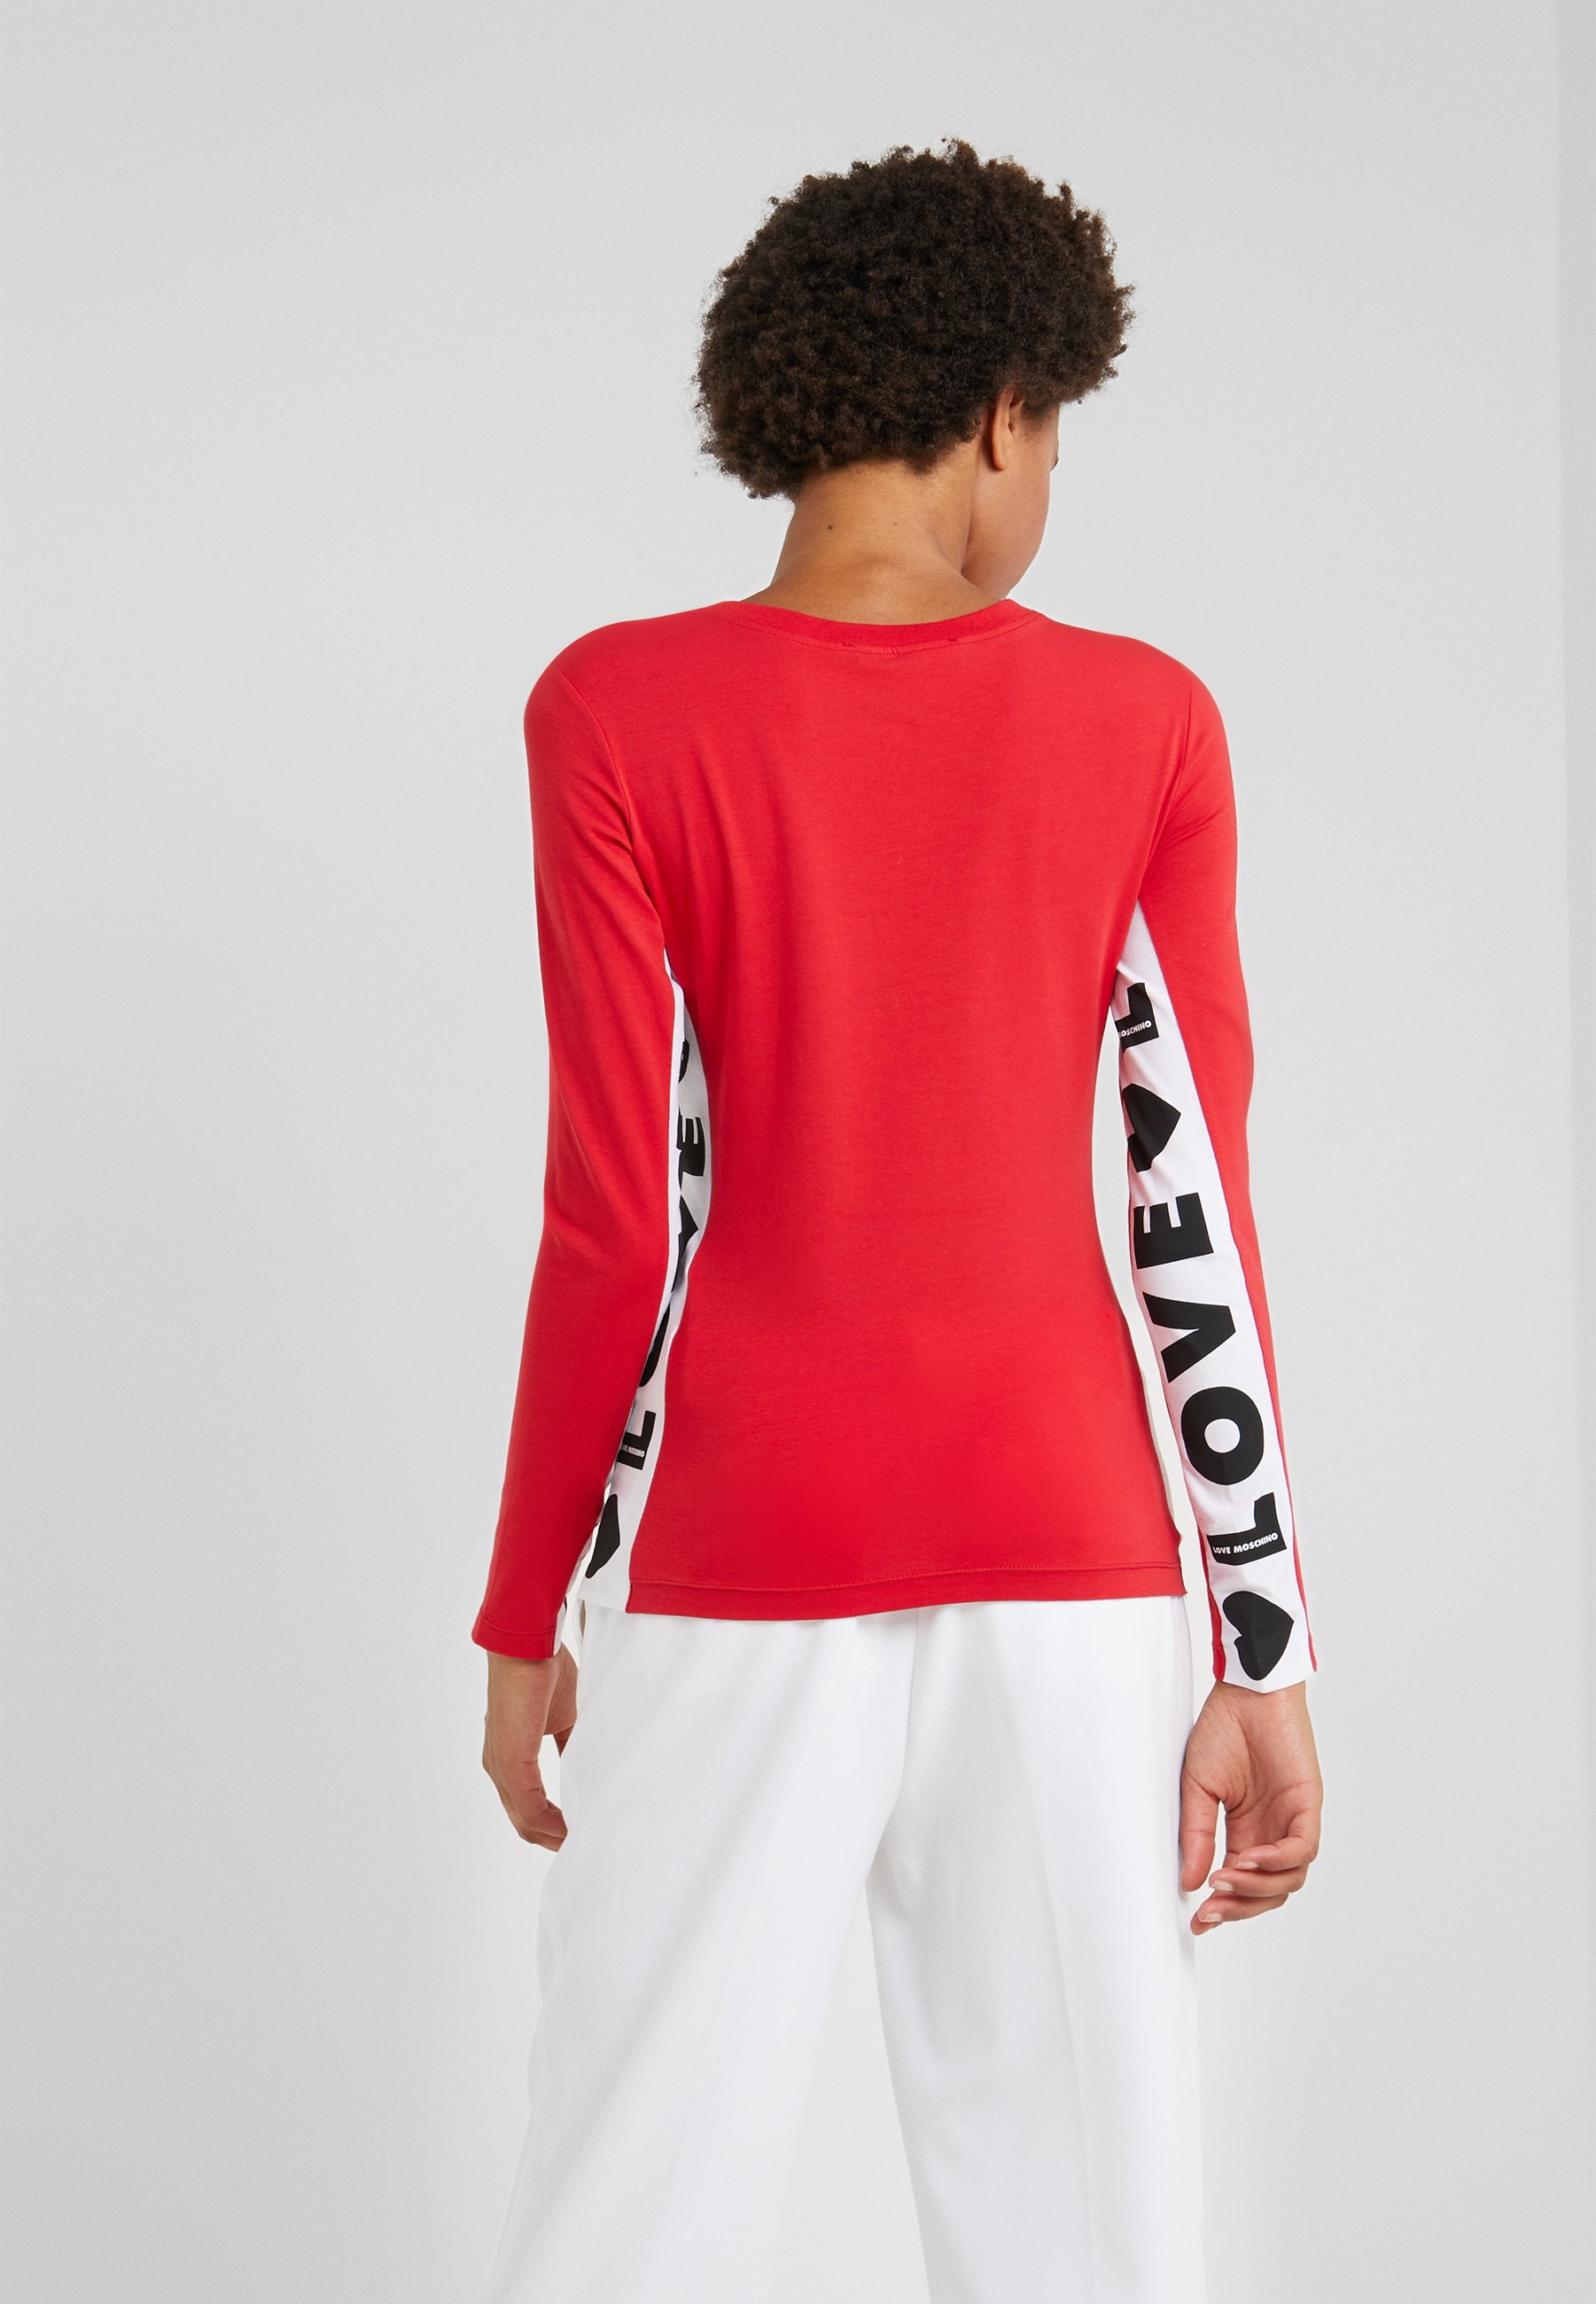 longues Moschino red shirt manches Love T à 6gybf7